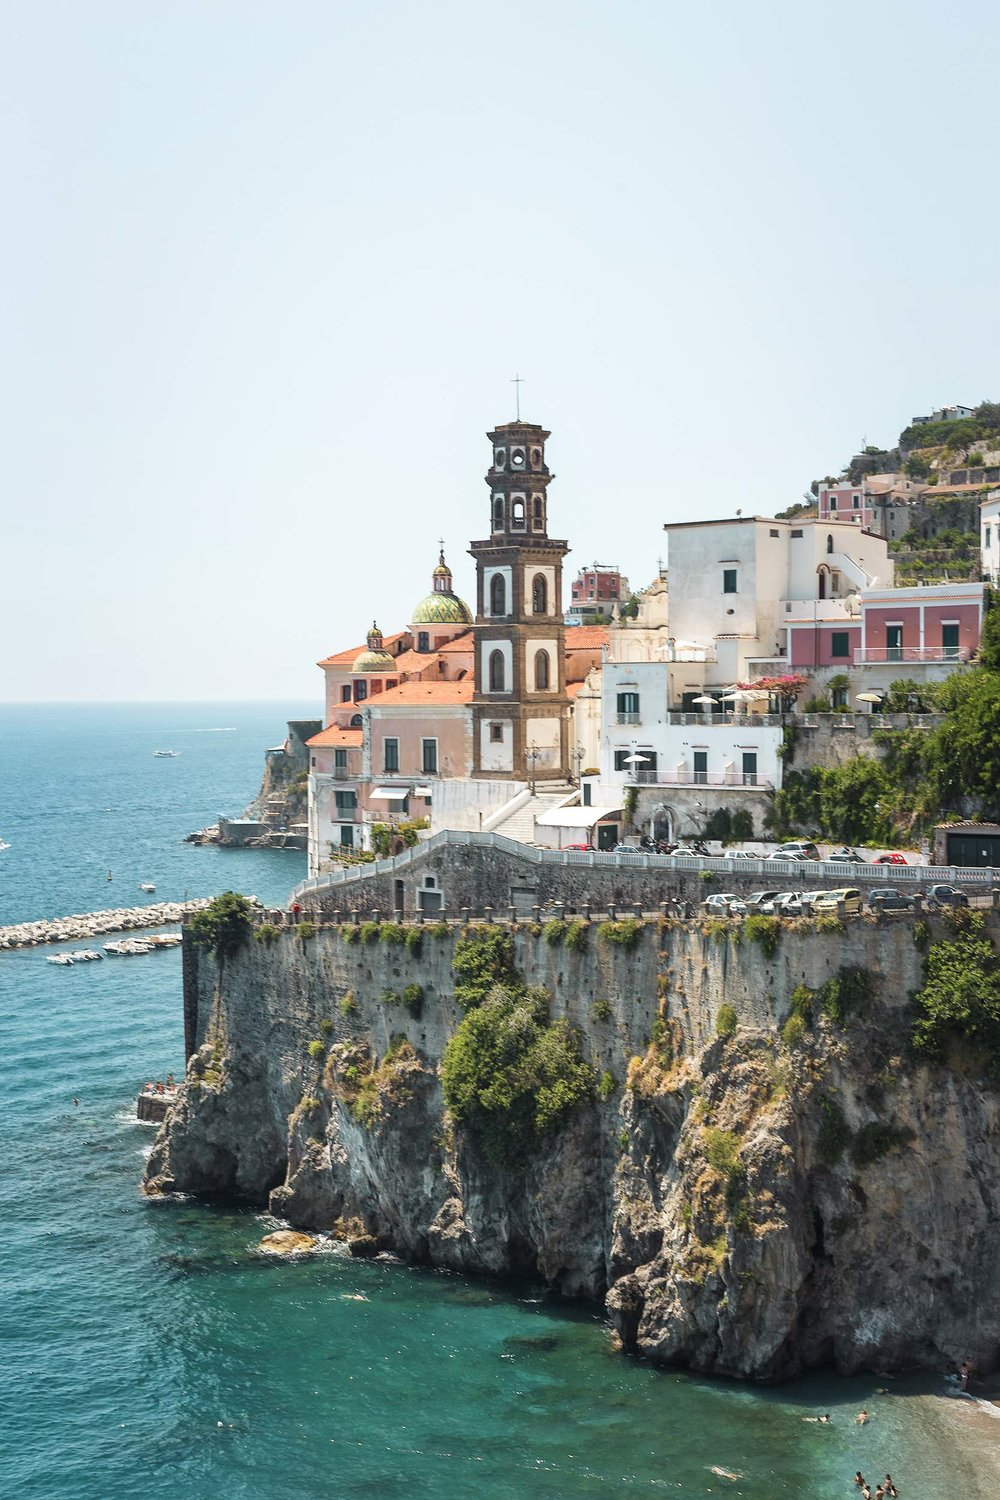 Views of Amalfi on Italy's Amalfi Coast